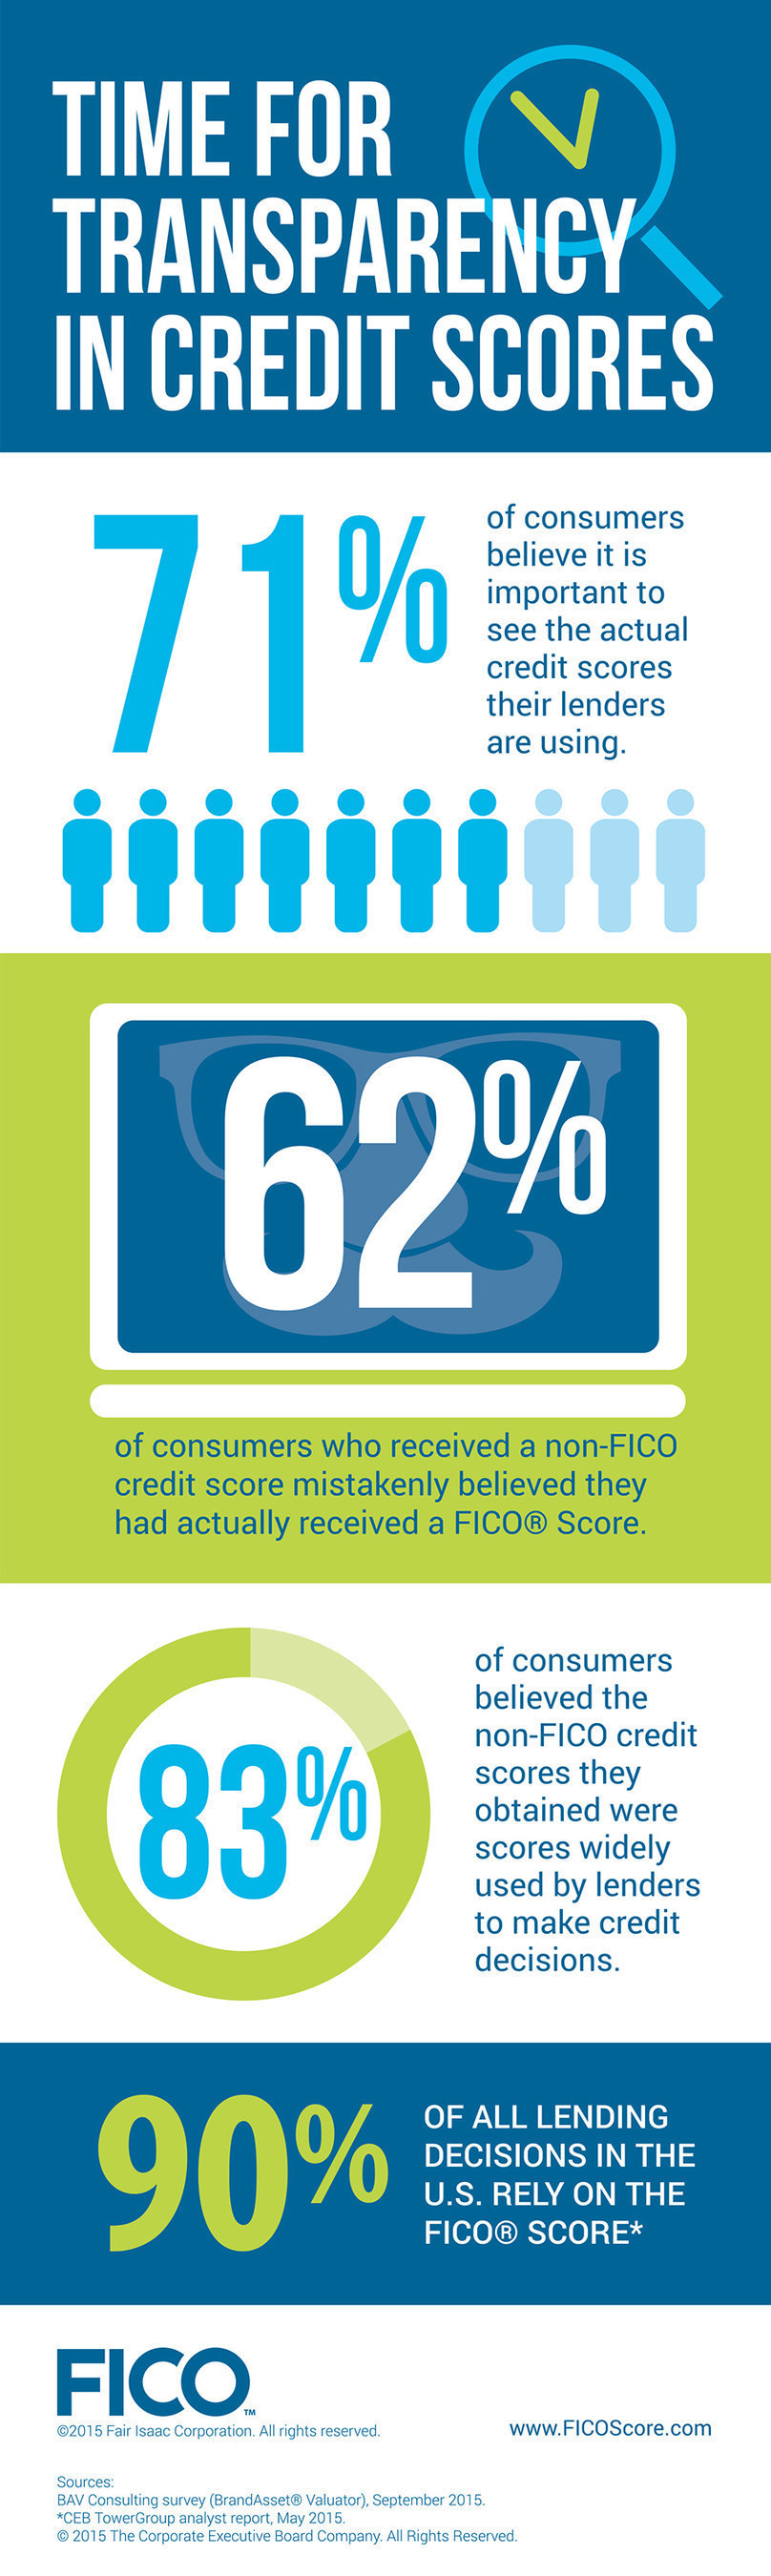 Time for Credit Score Transparency